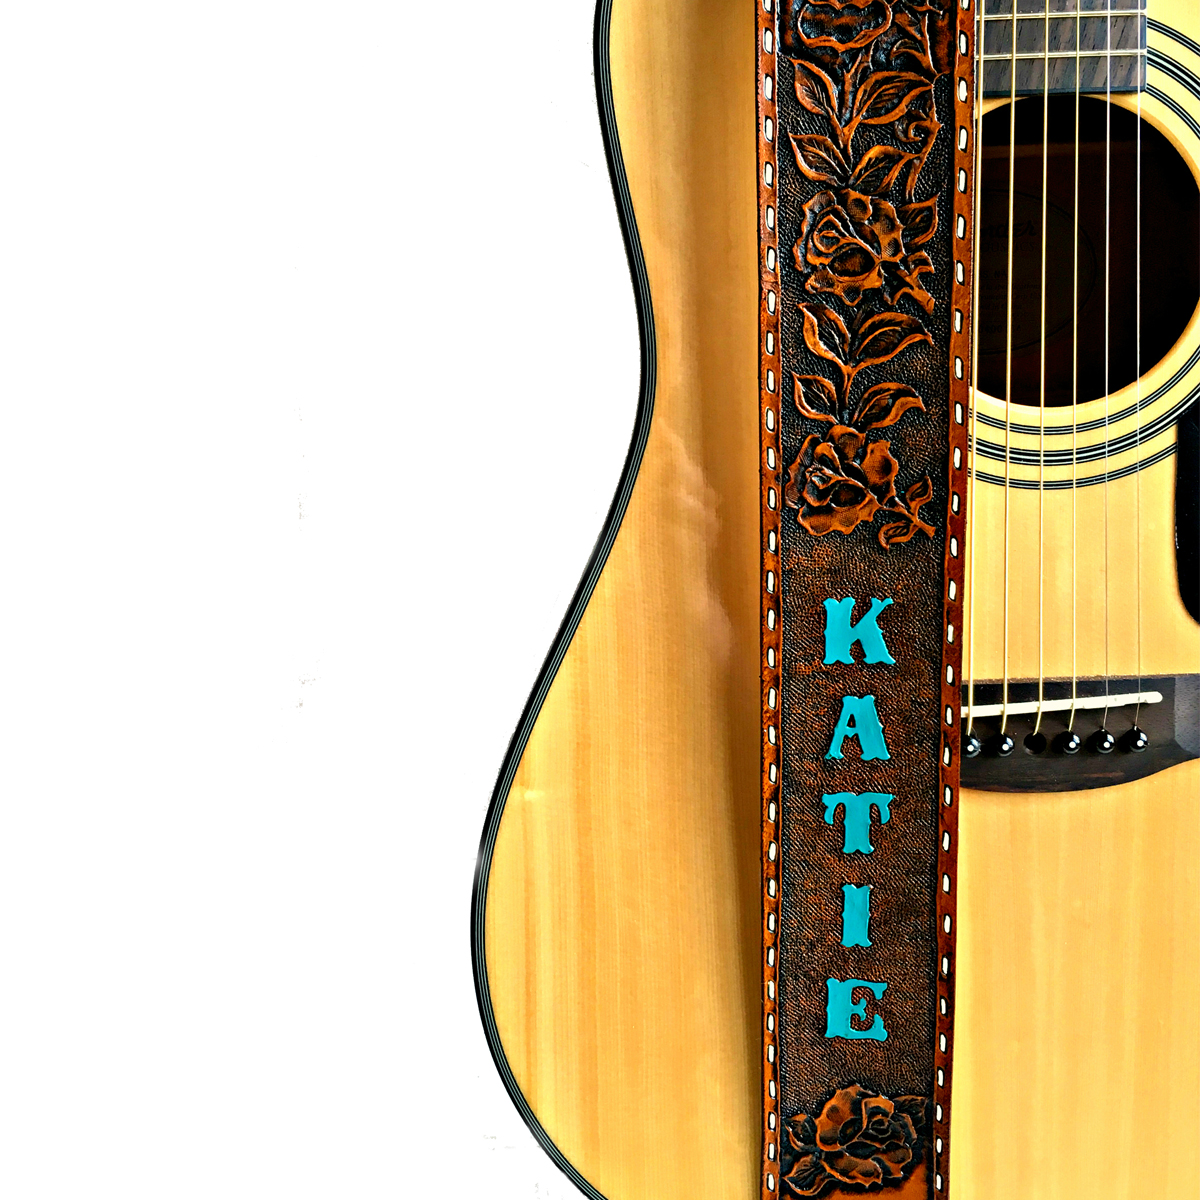 western-rose-vine-tooled-painted-leather-guitar-strap-the-leather-smithy_1